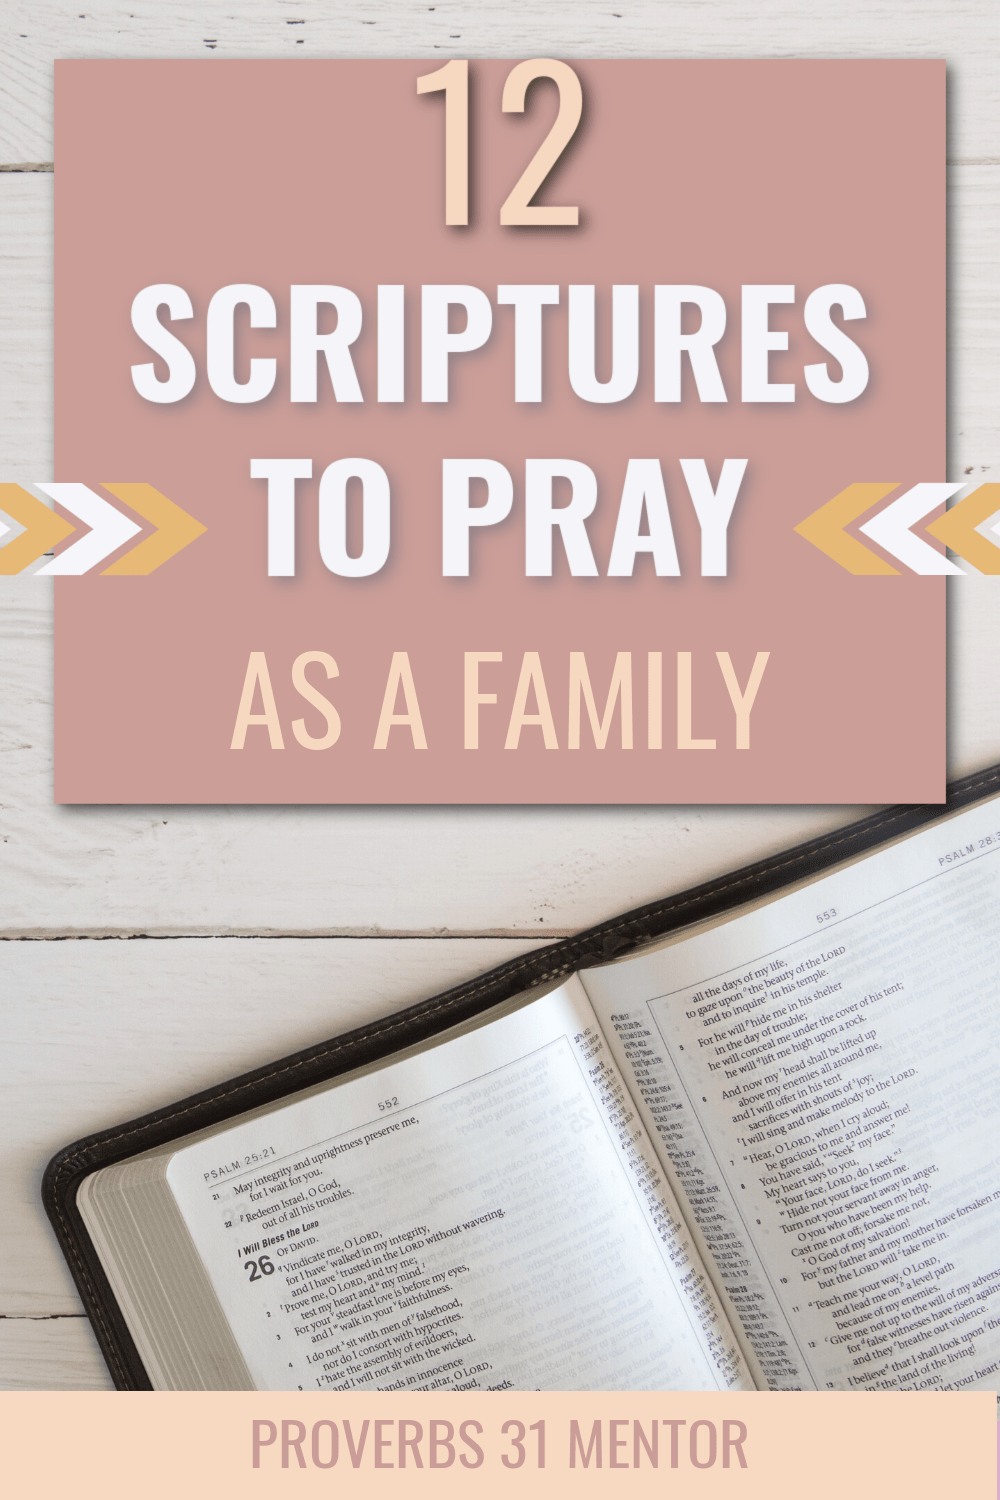 title: 12 Scriptures to Pray as a Family  Picture: open Bible on wooden table